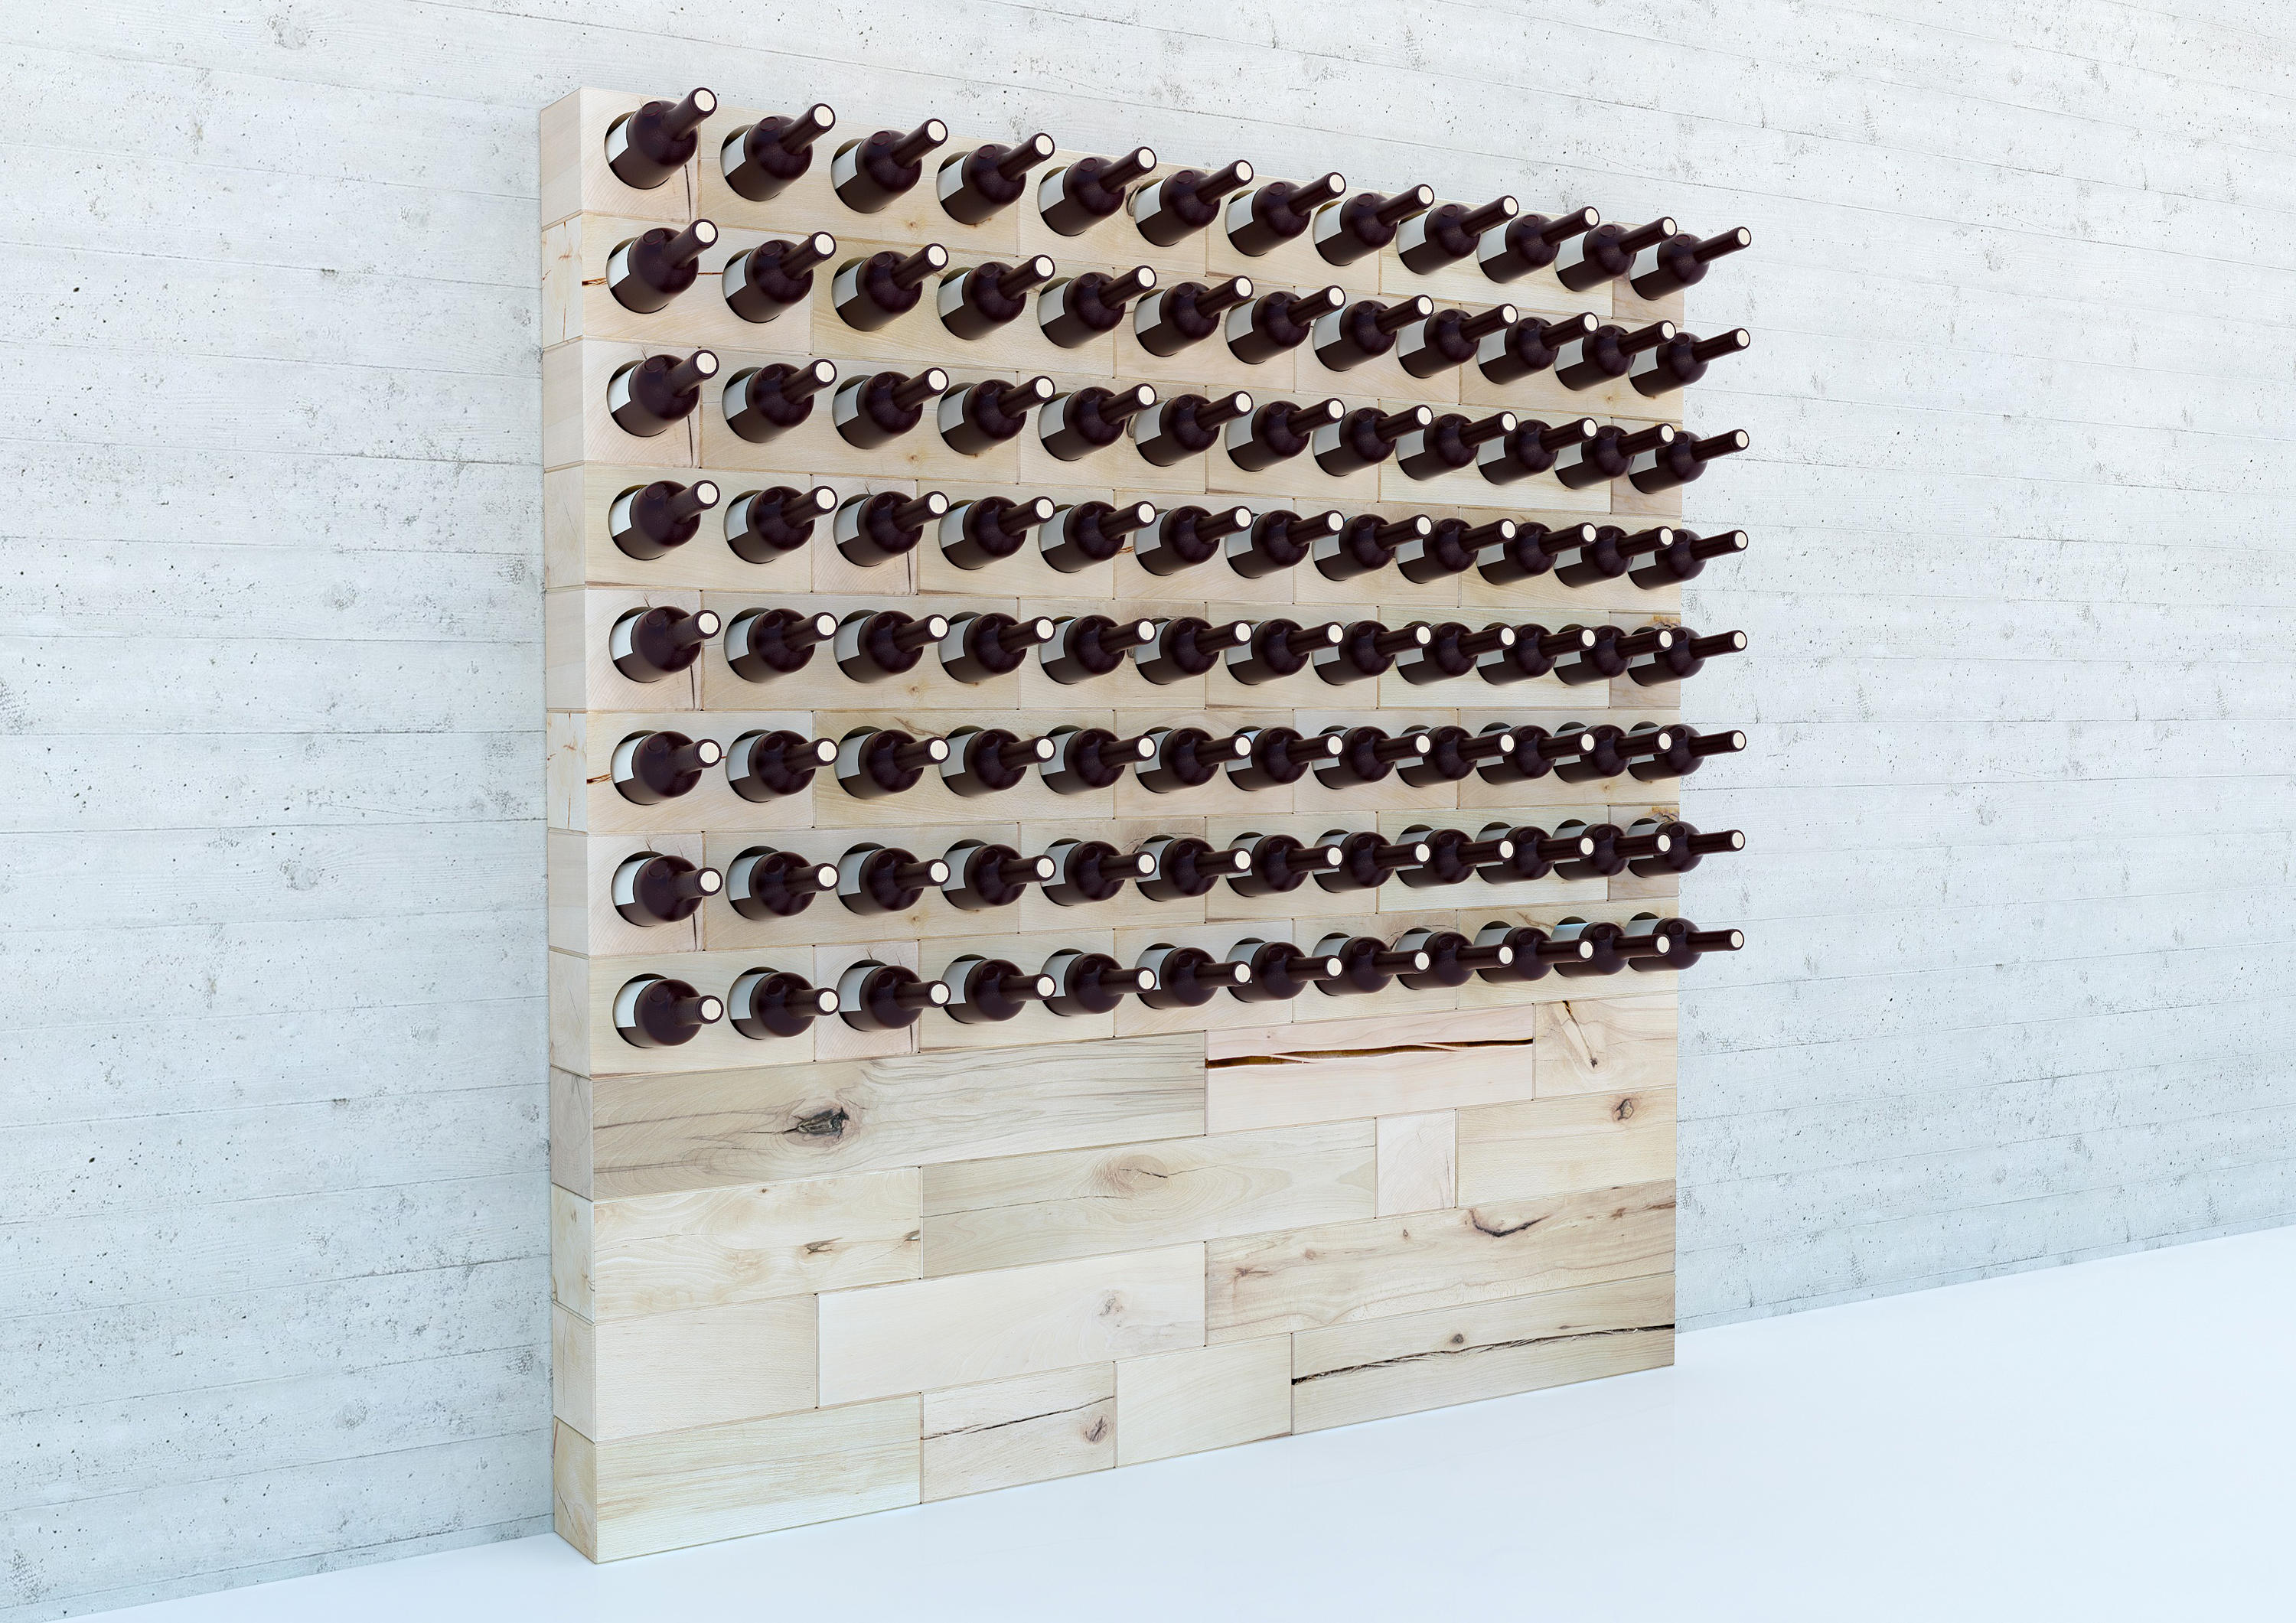 craftwand wine rack design wine racks from craftwand. Black Bedroom Furniture Sets. Home Design Ideas